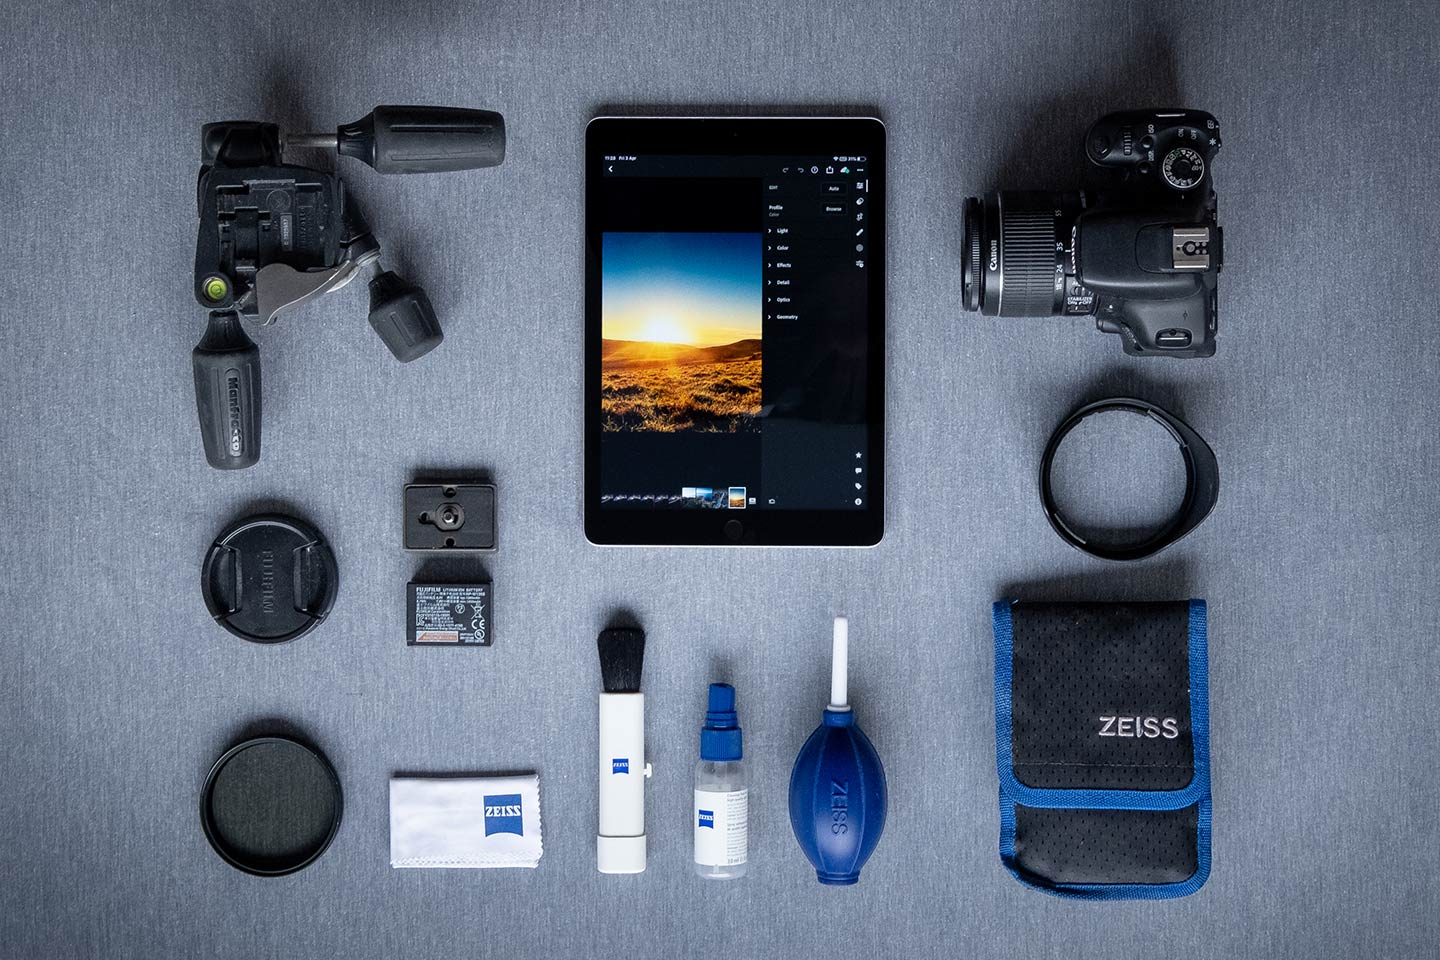 A photography starter kit is laid out on a grey worktop including a camera, iPad, tripod head and cleaning accessories.